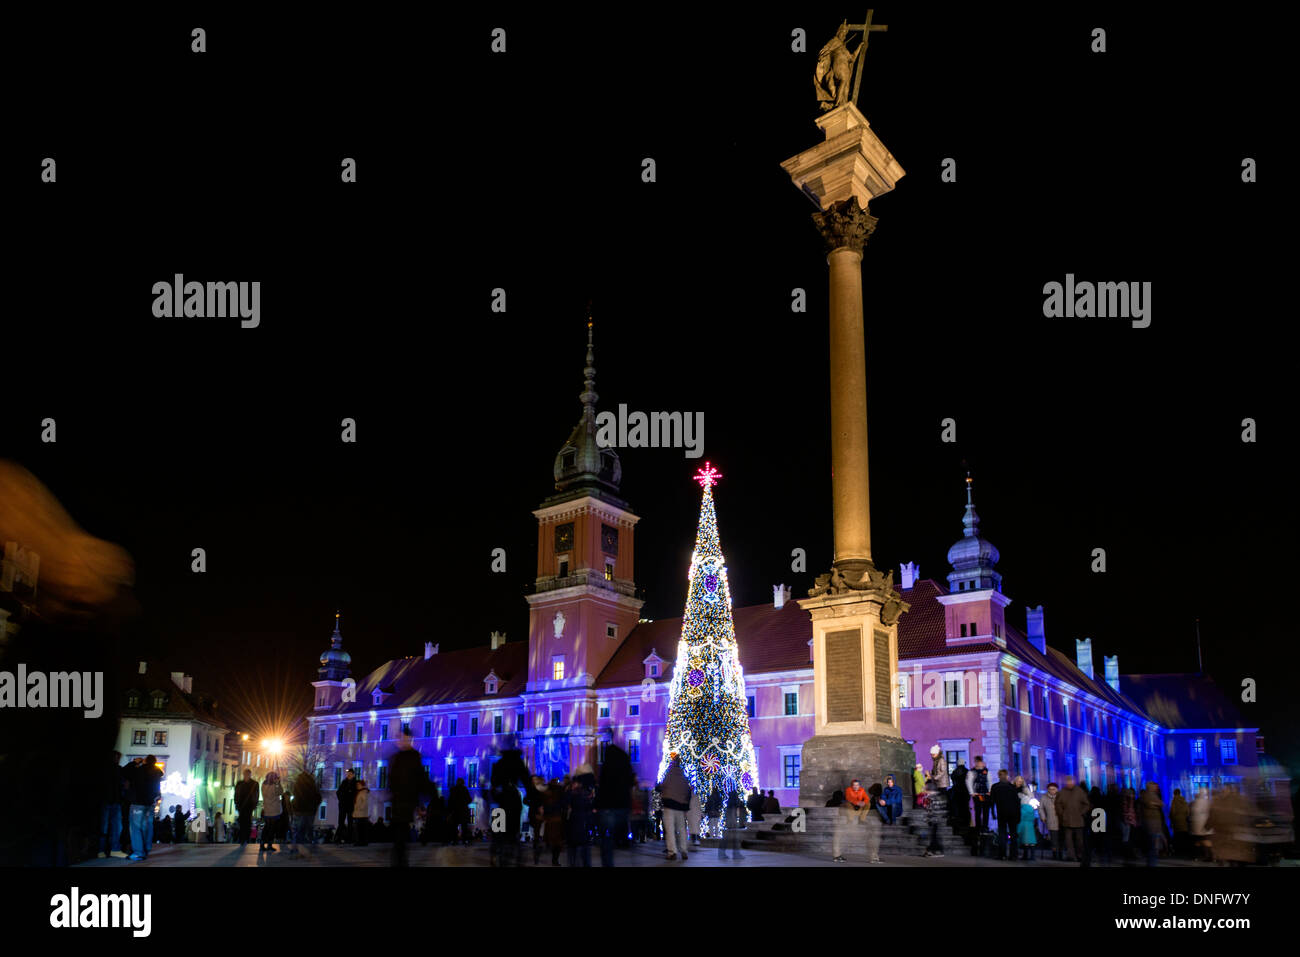 Royal Castle in Warsaw, Poland during Christmas time - Stock Image